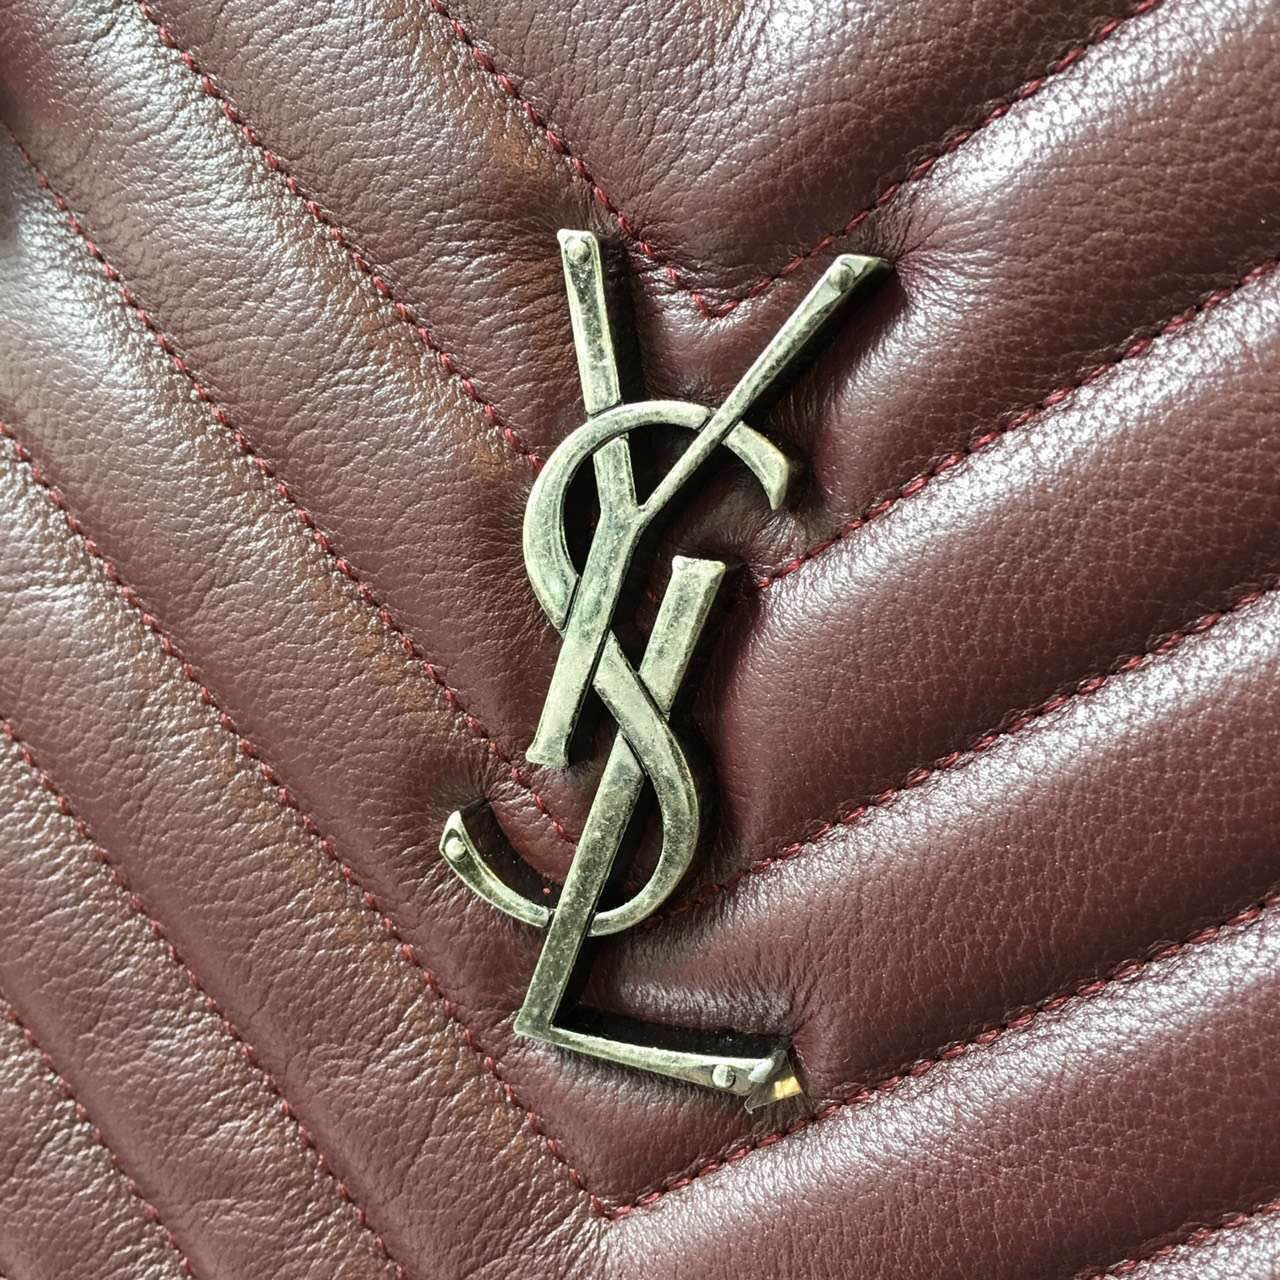 New Arrival!2016 Cheap YSL Out Sale with Free Shipping-Saint Laurent Classic Monogram Shopping Bag in Bordeaux MATELASSE Leather